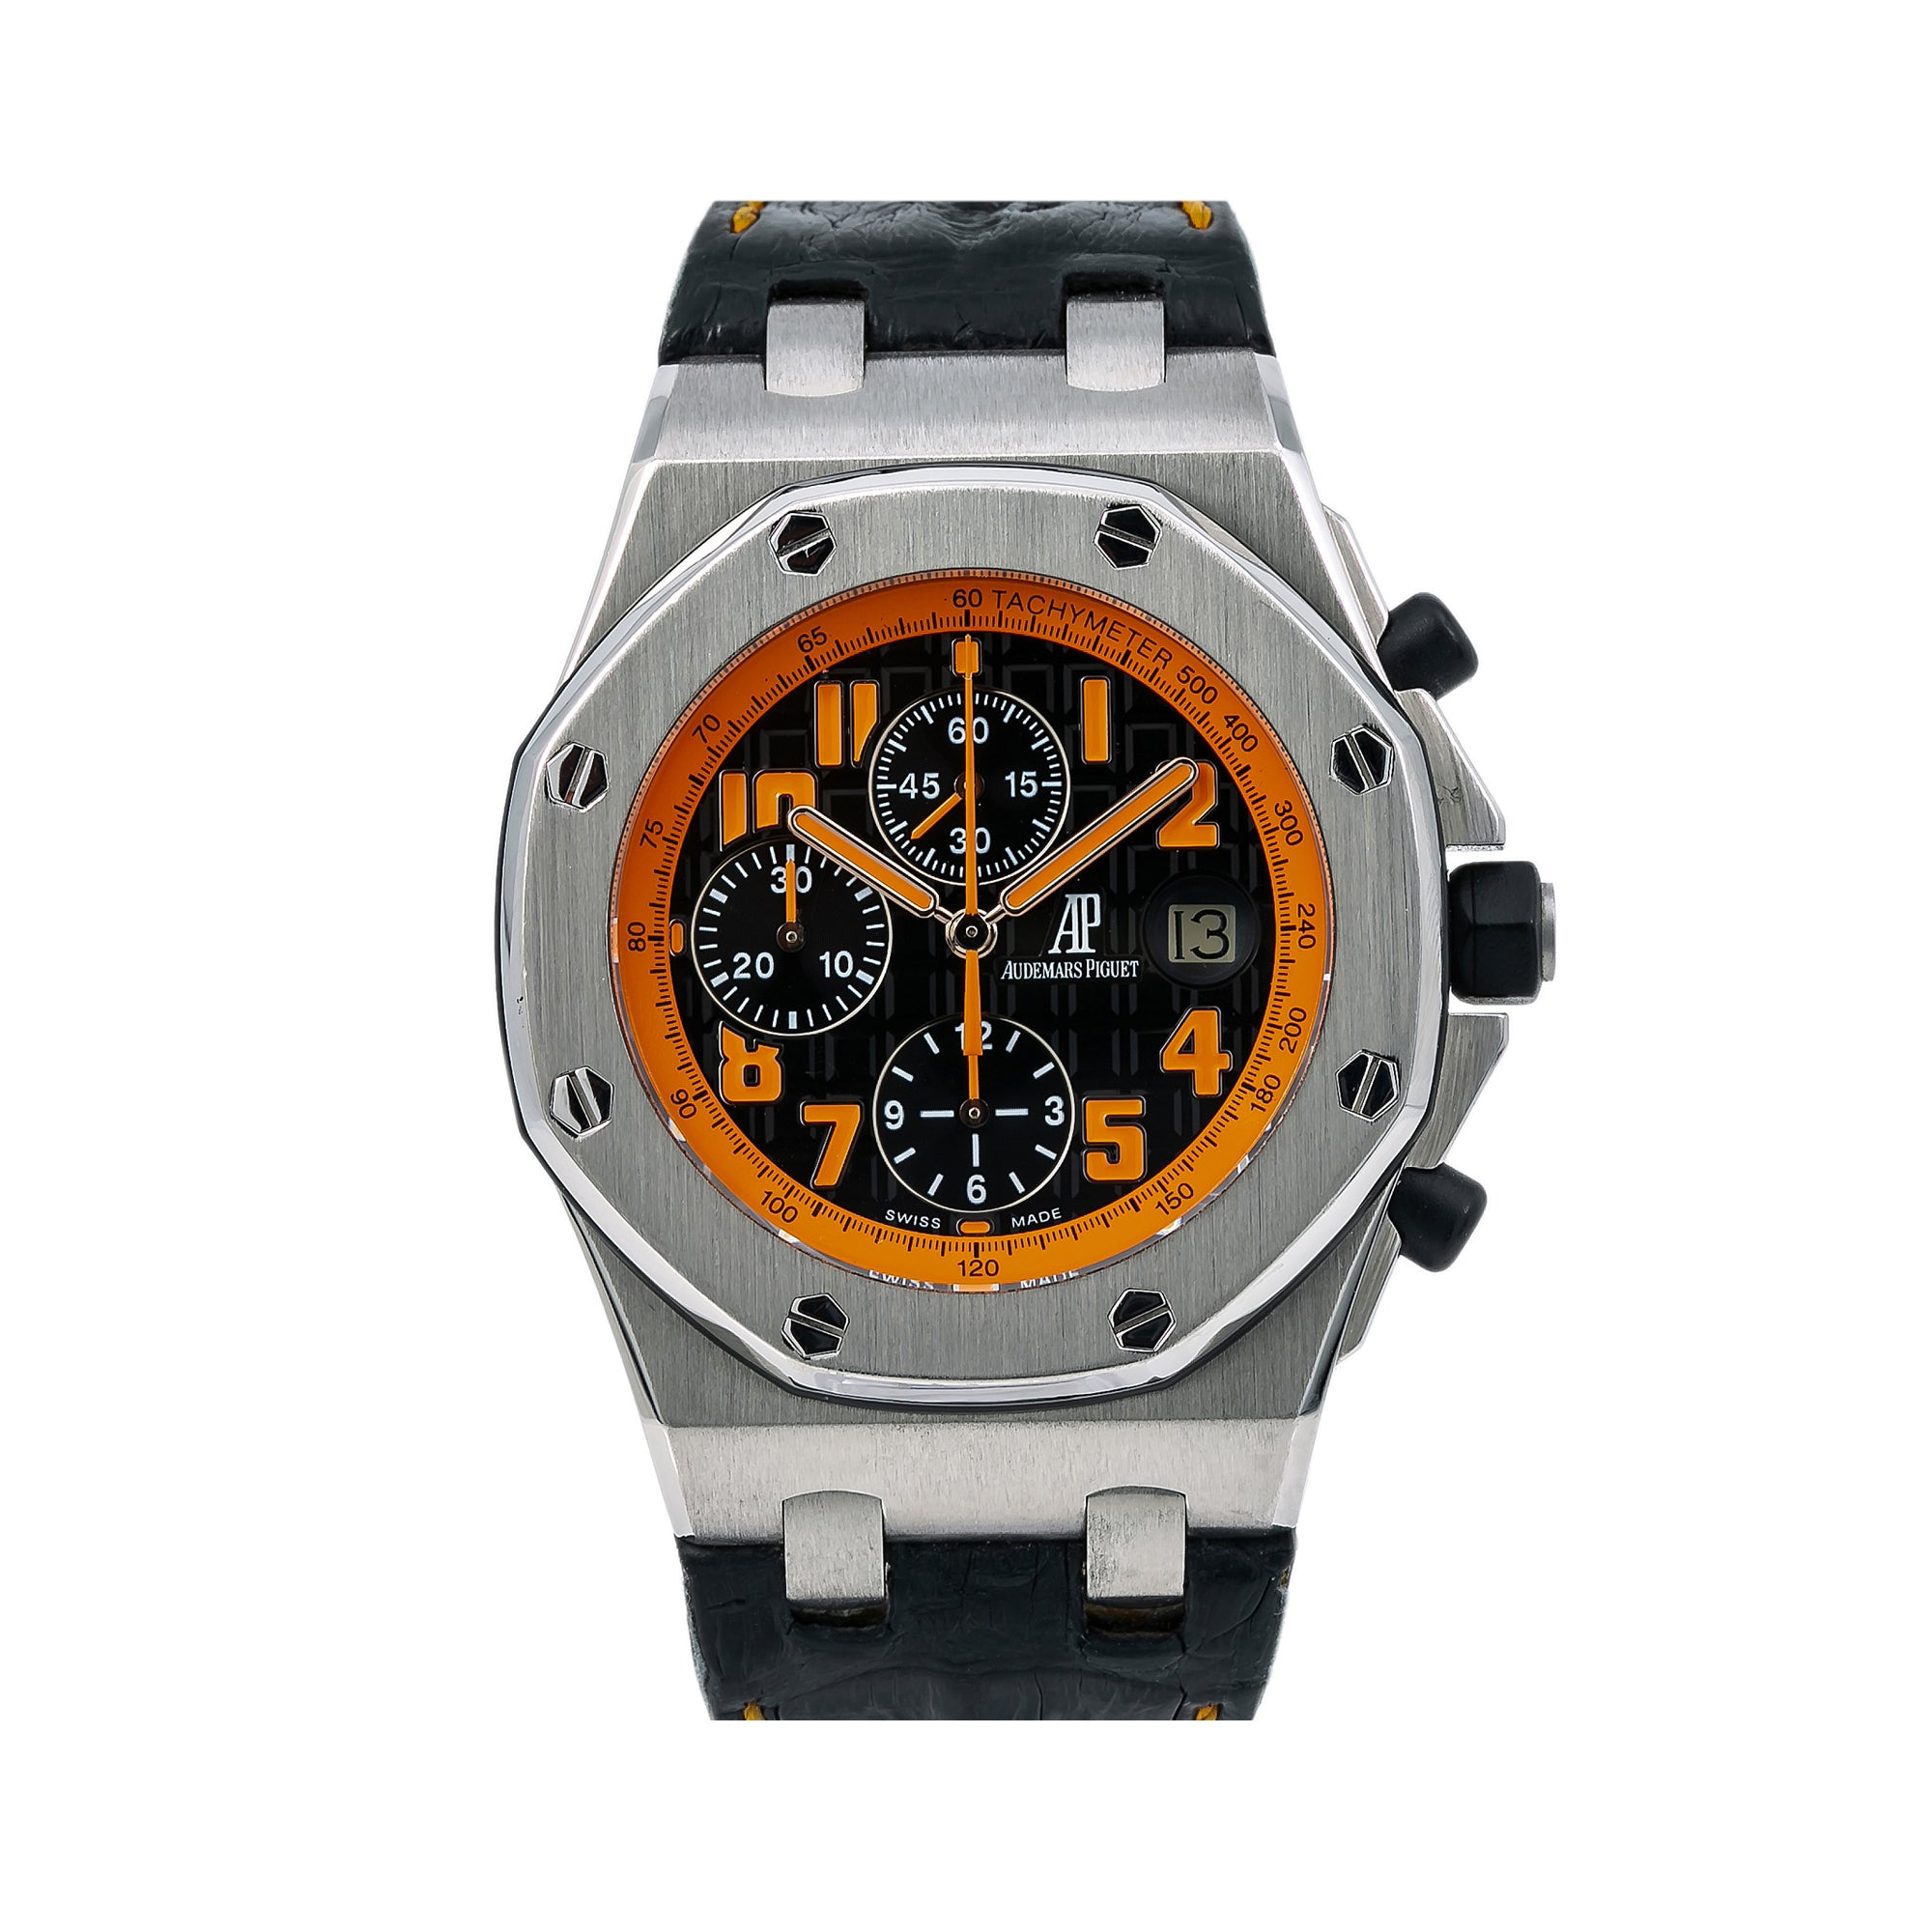 Audemars Piguet Royal Oak Offshore Chronograph 26170ST 42MM Black Dial With Leather Bracelet